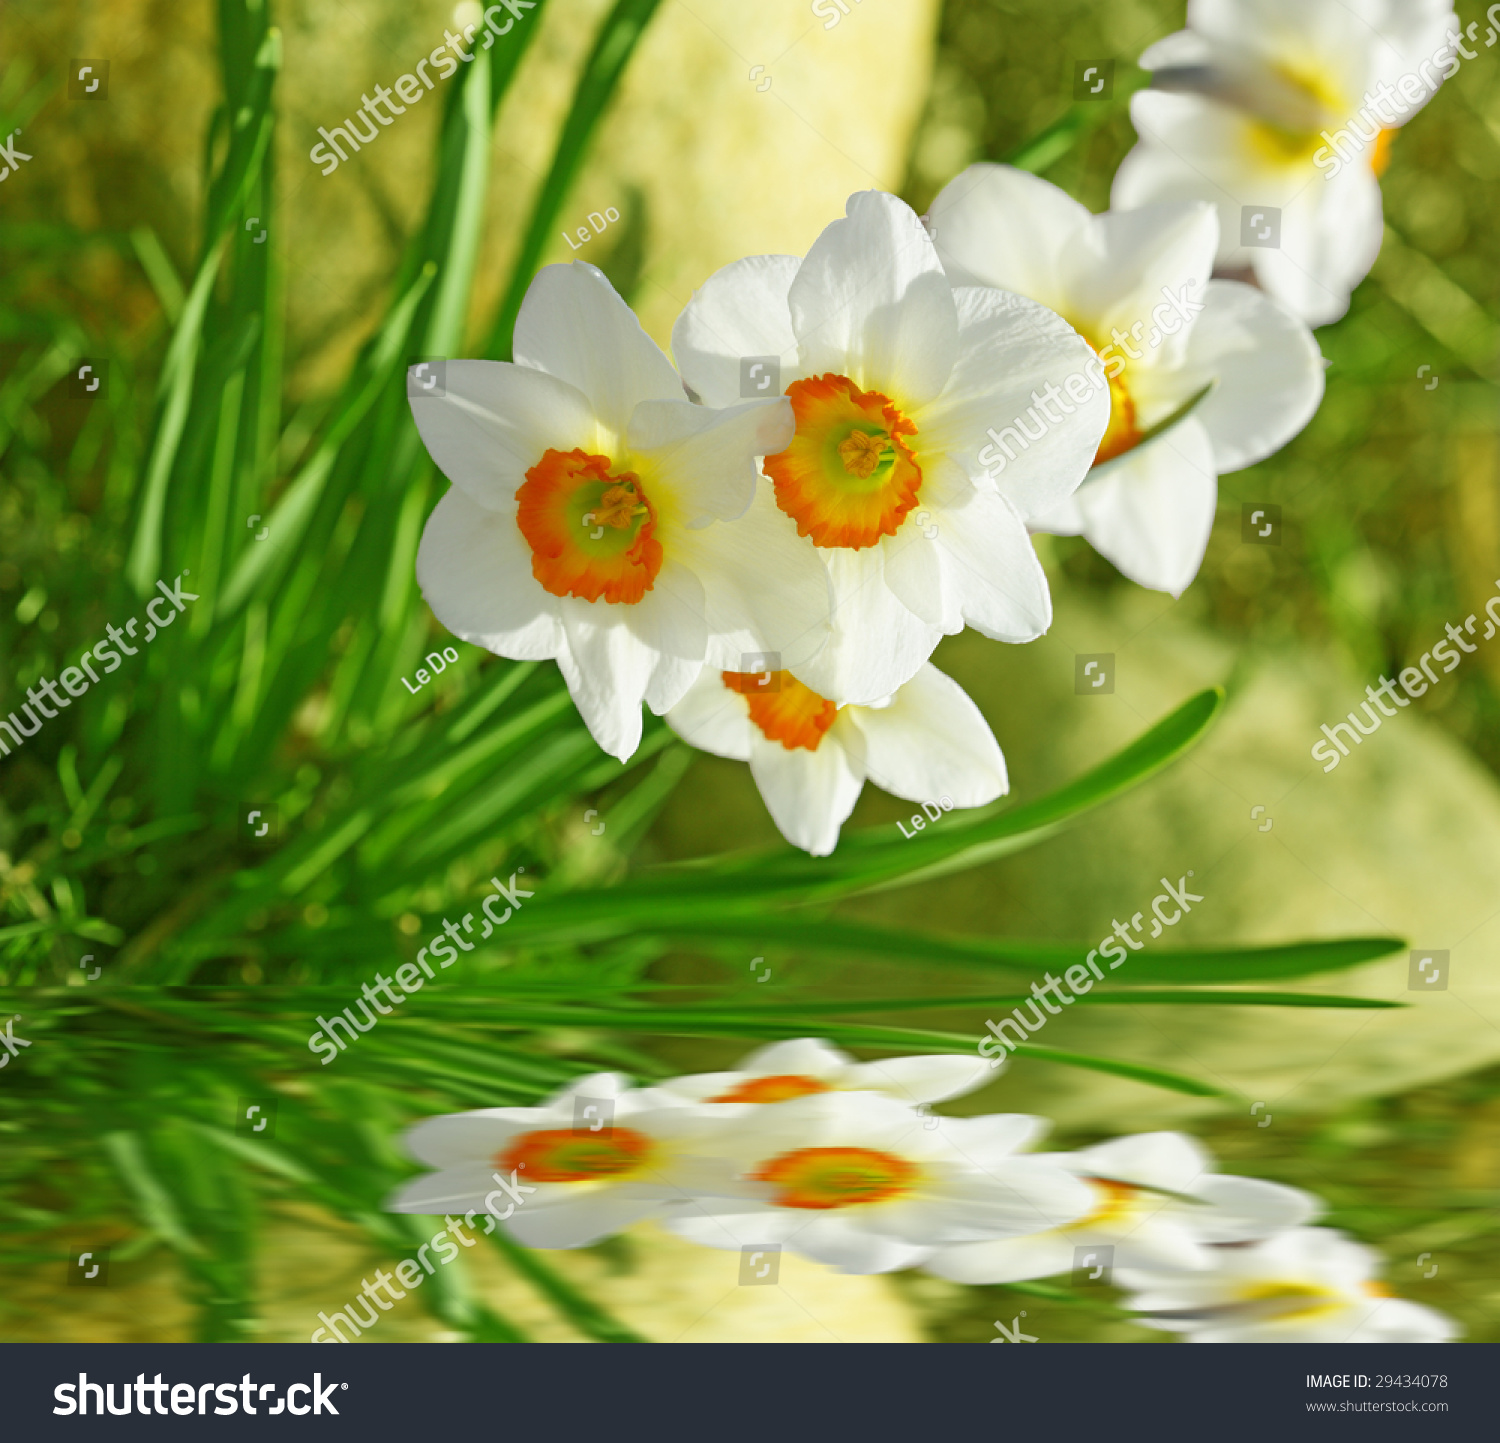 white daffodil flowers reflection on water stock photo 29434078